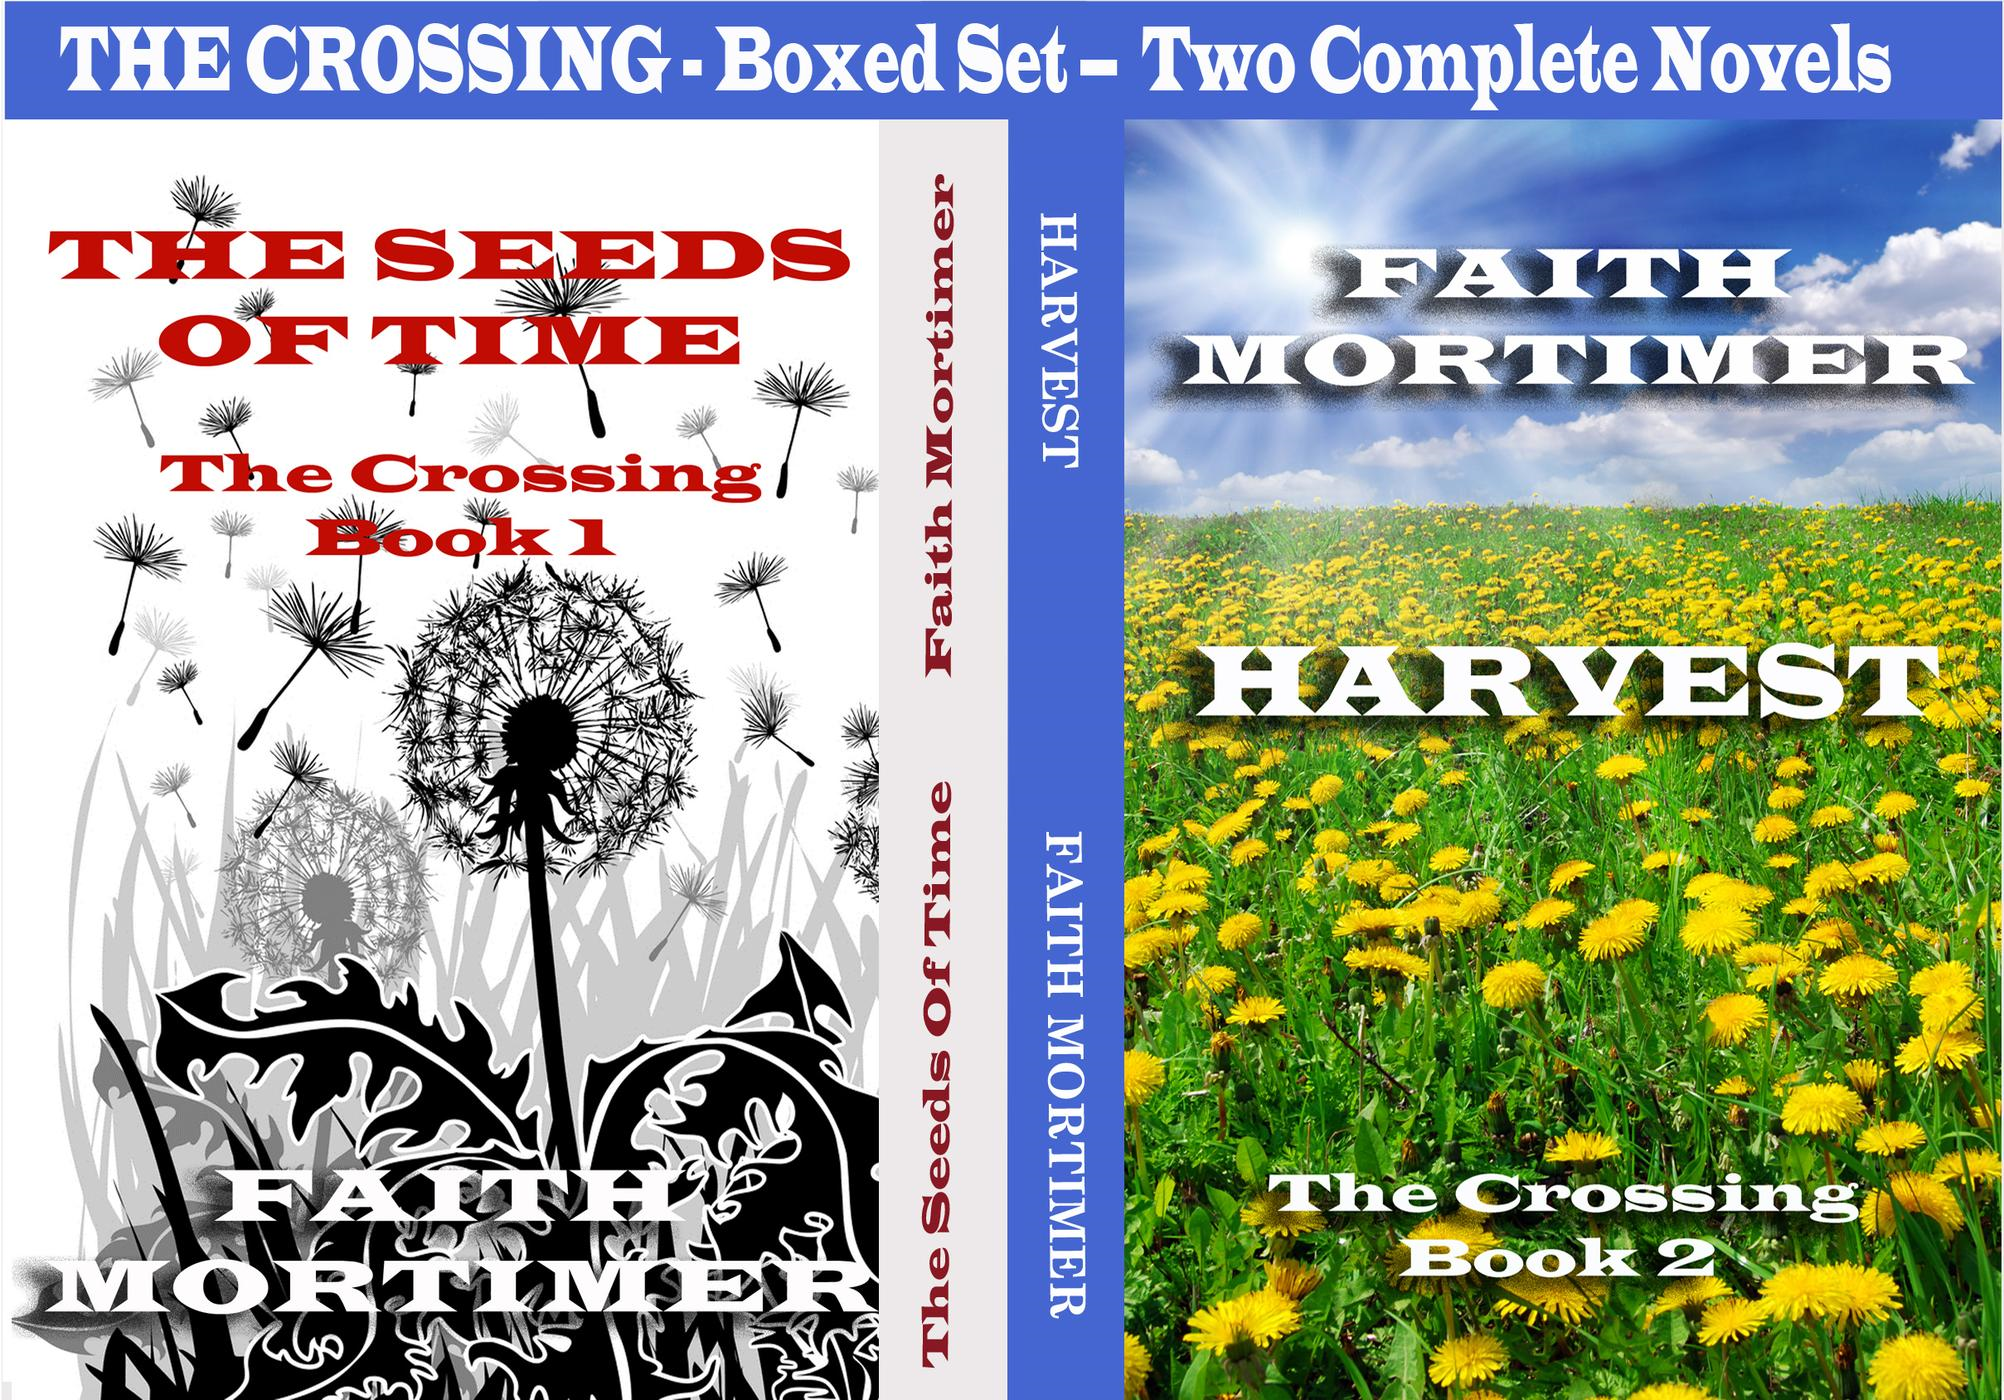 The Crossing - Boxed set of Two Action & Adventure Novels